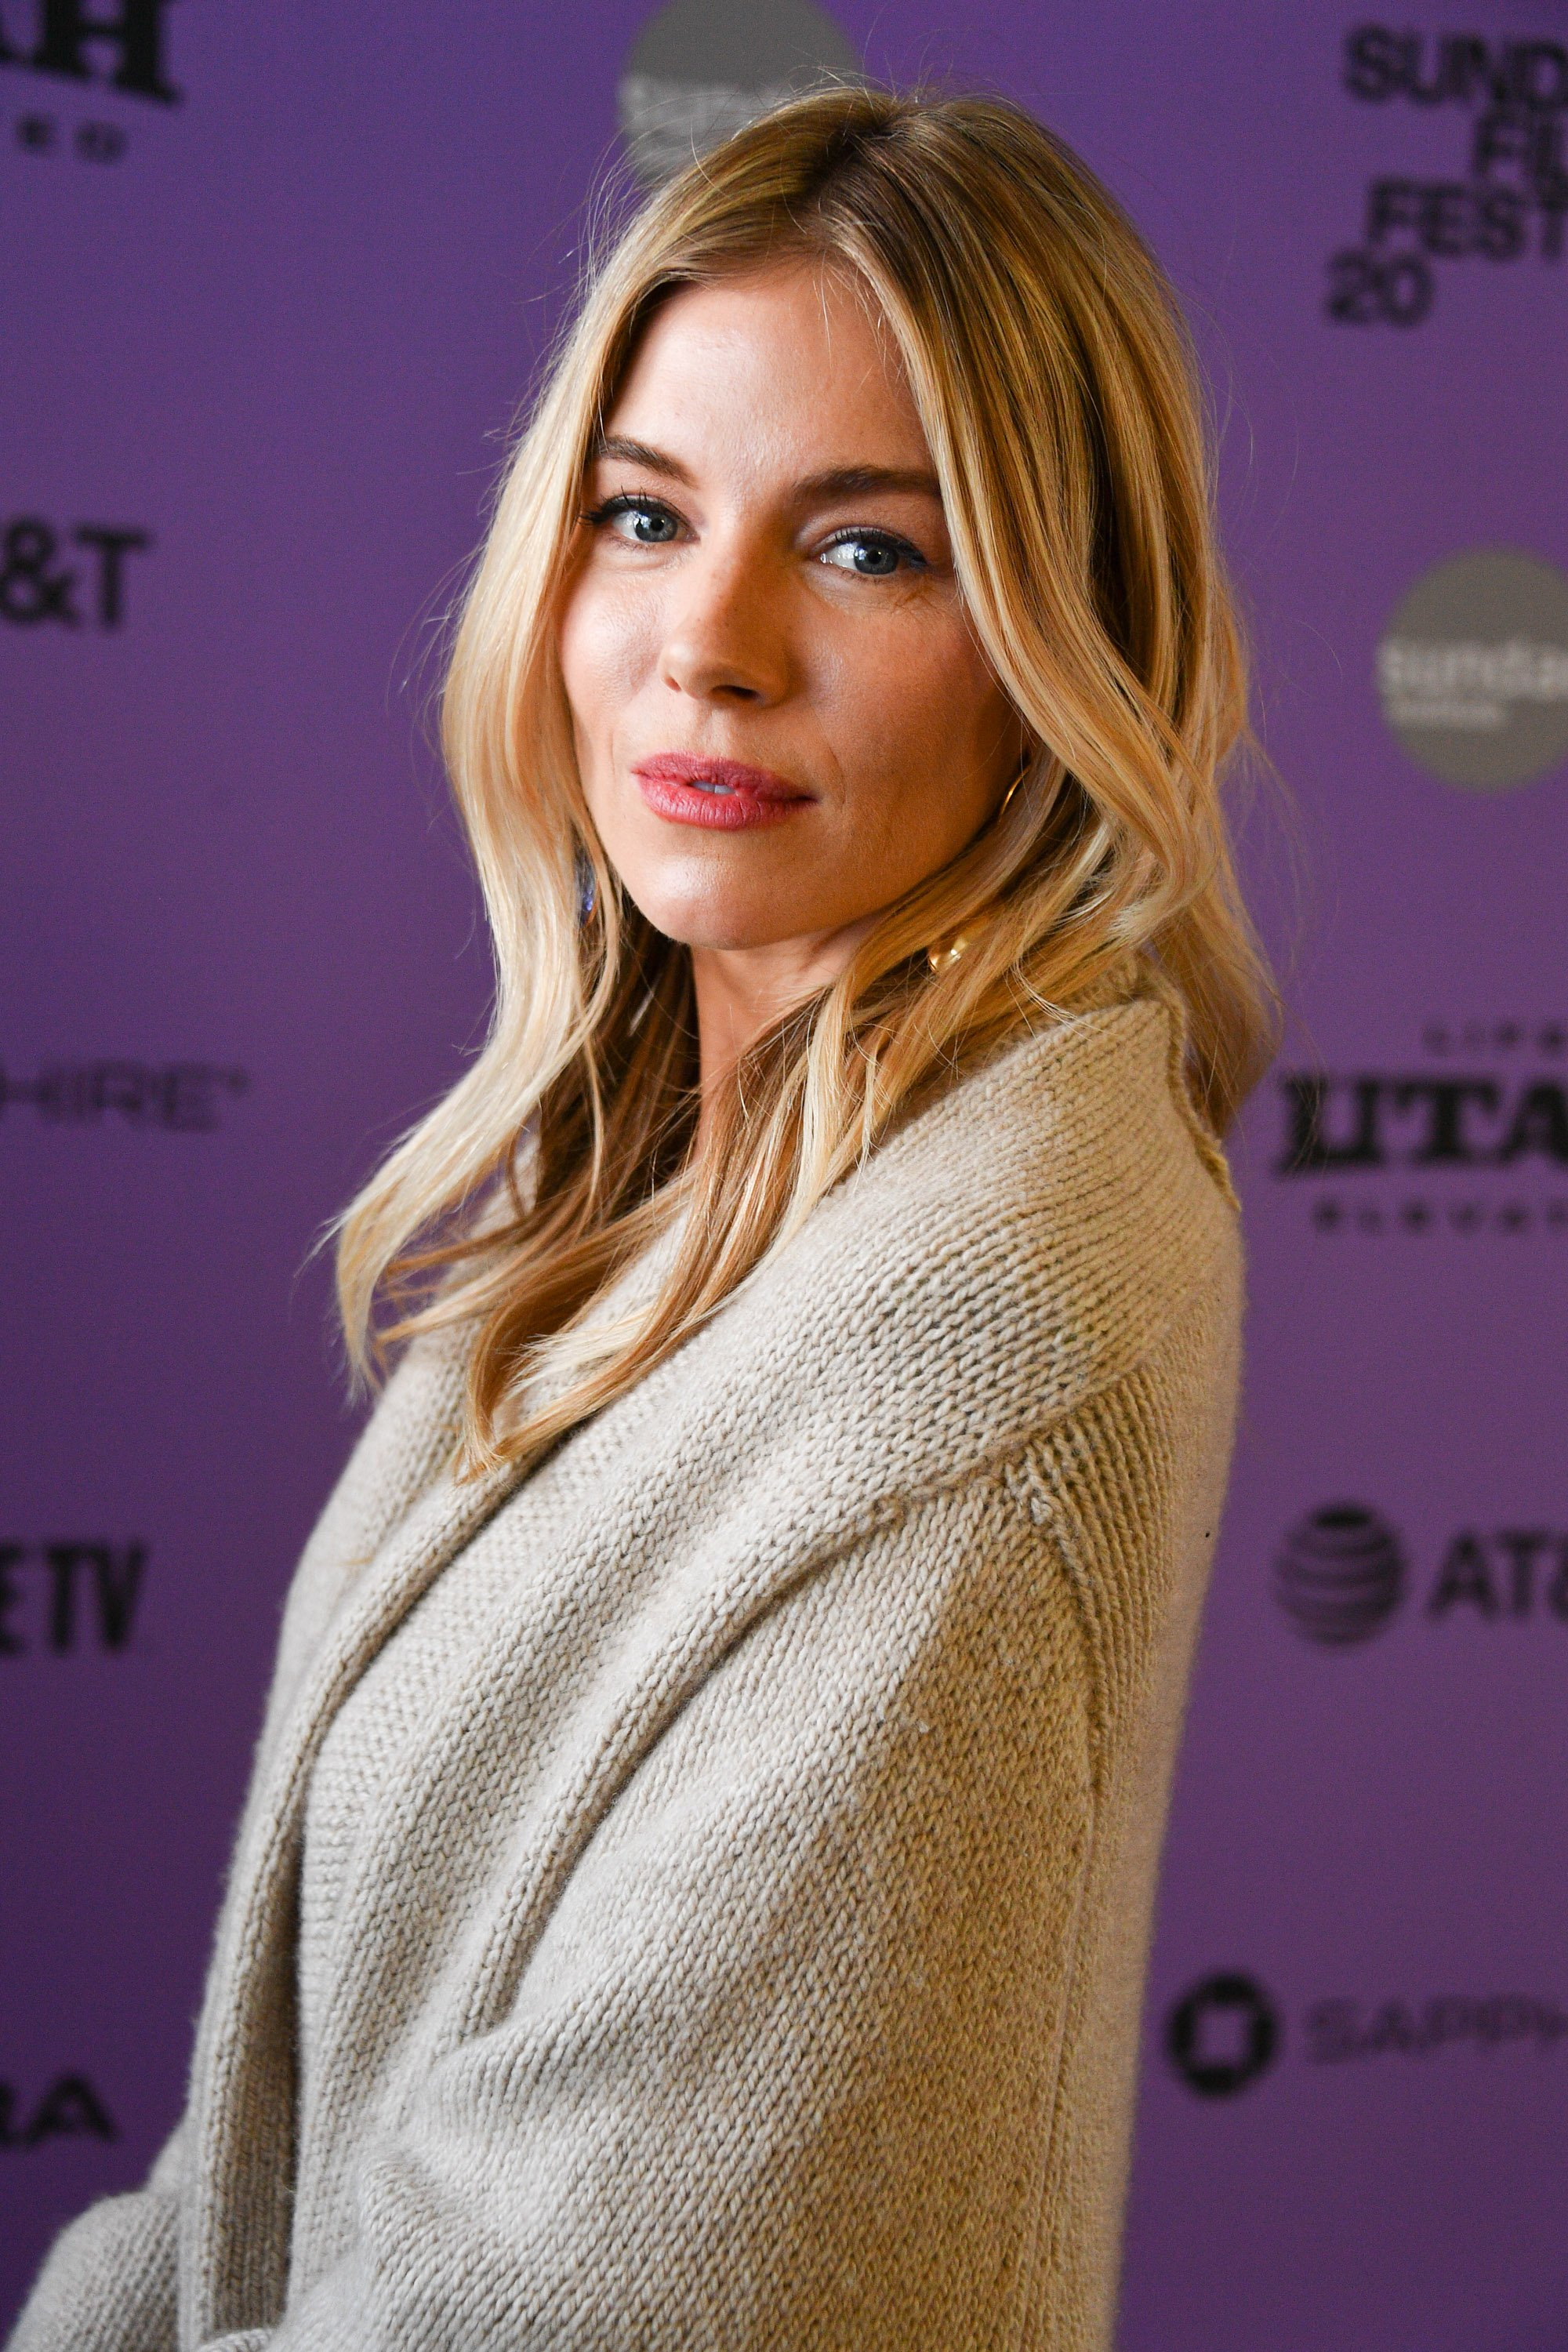 Sienna Miller attends the 2020 Sundance Film Festival / Photo:Getty Images